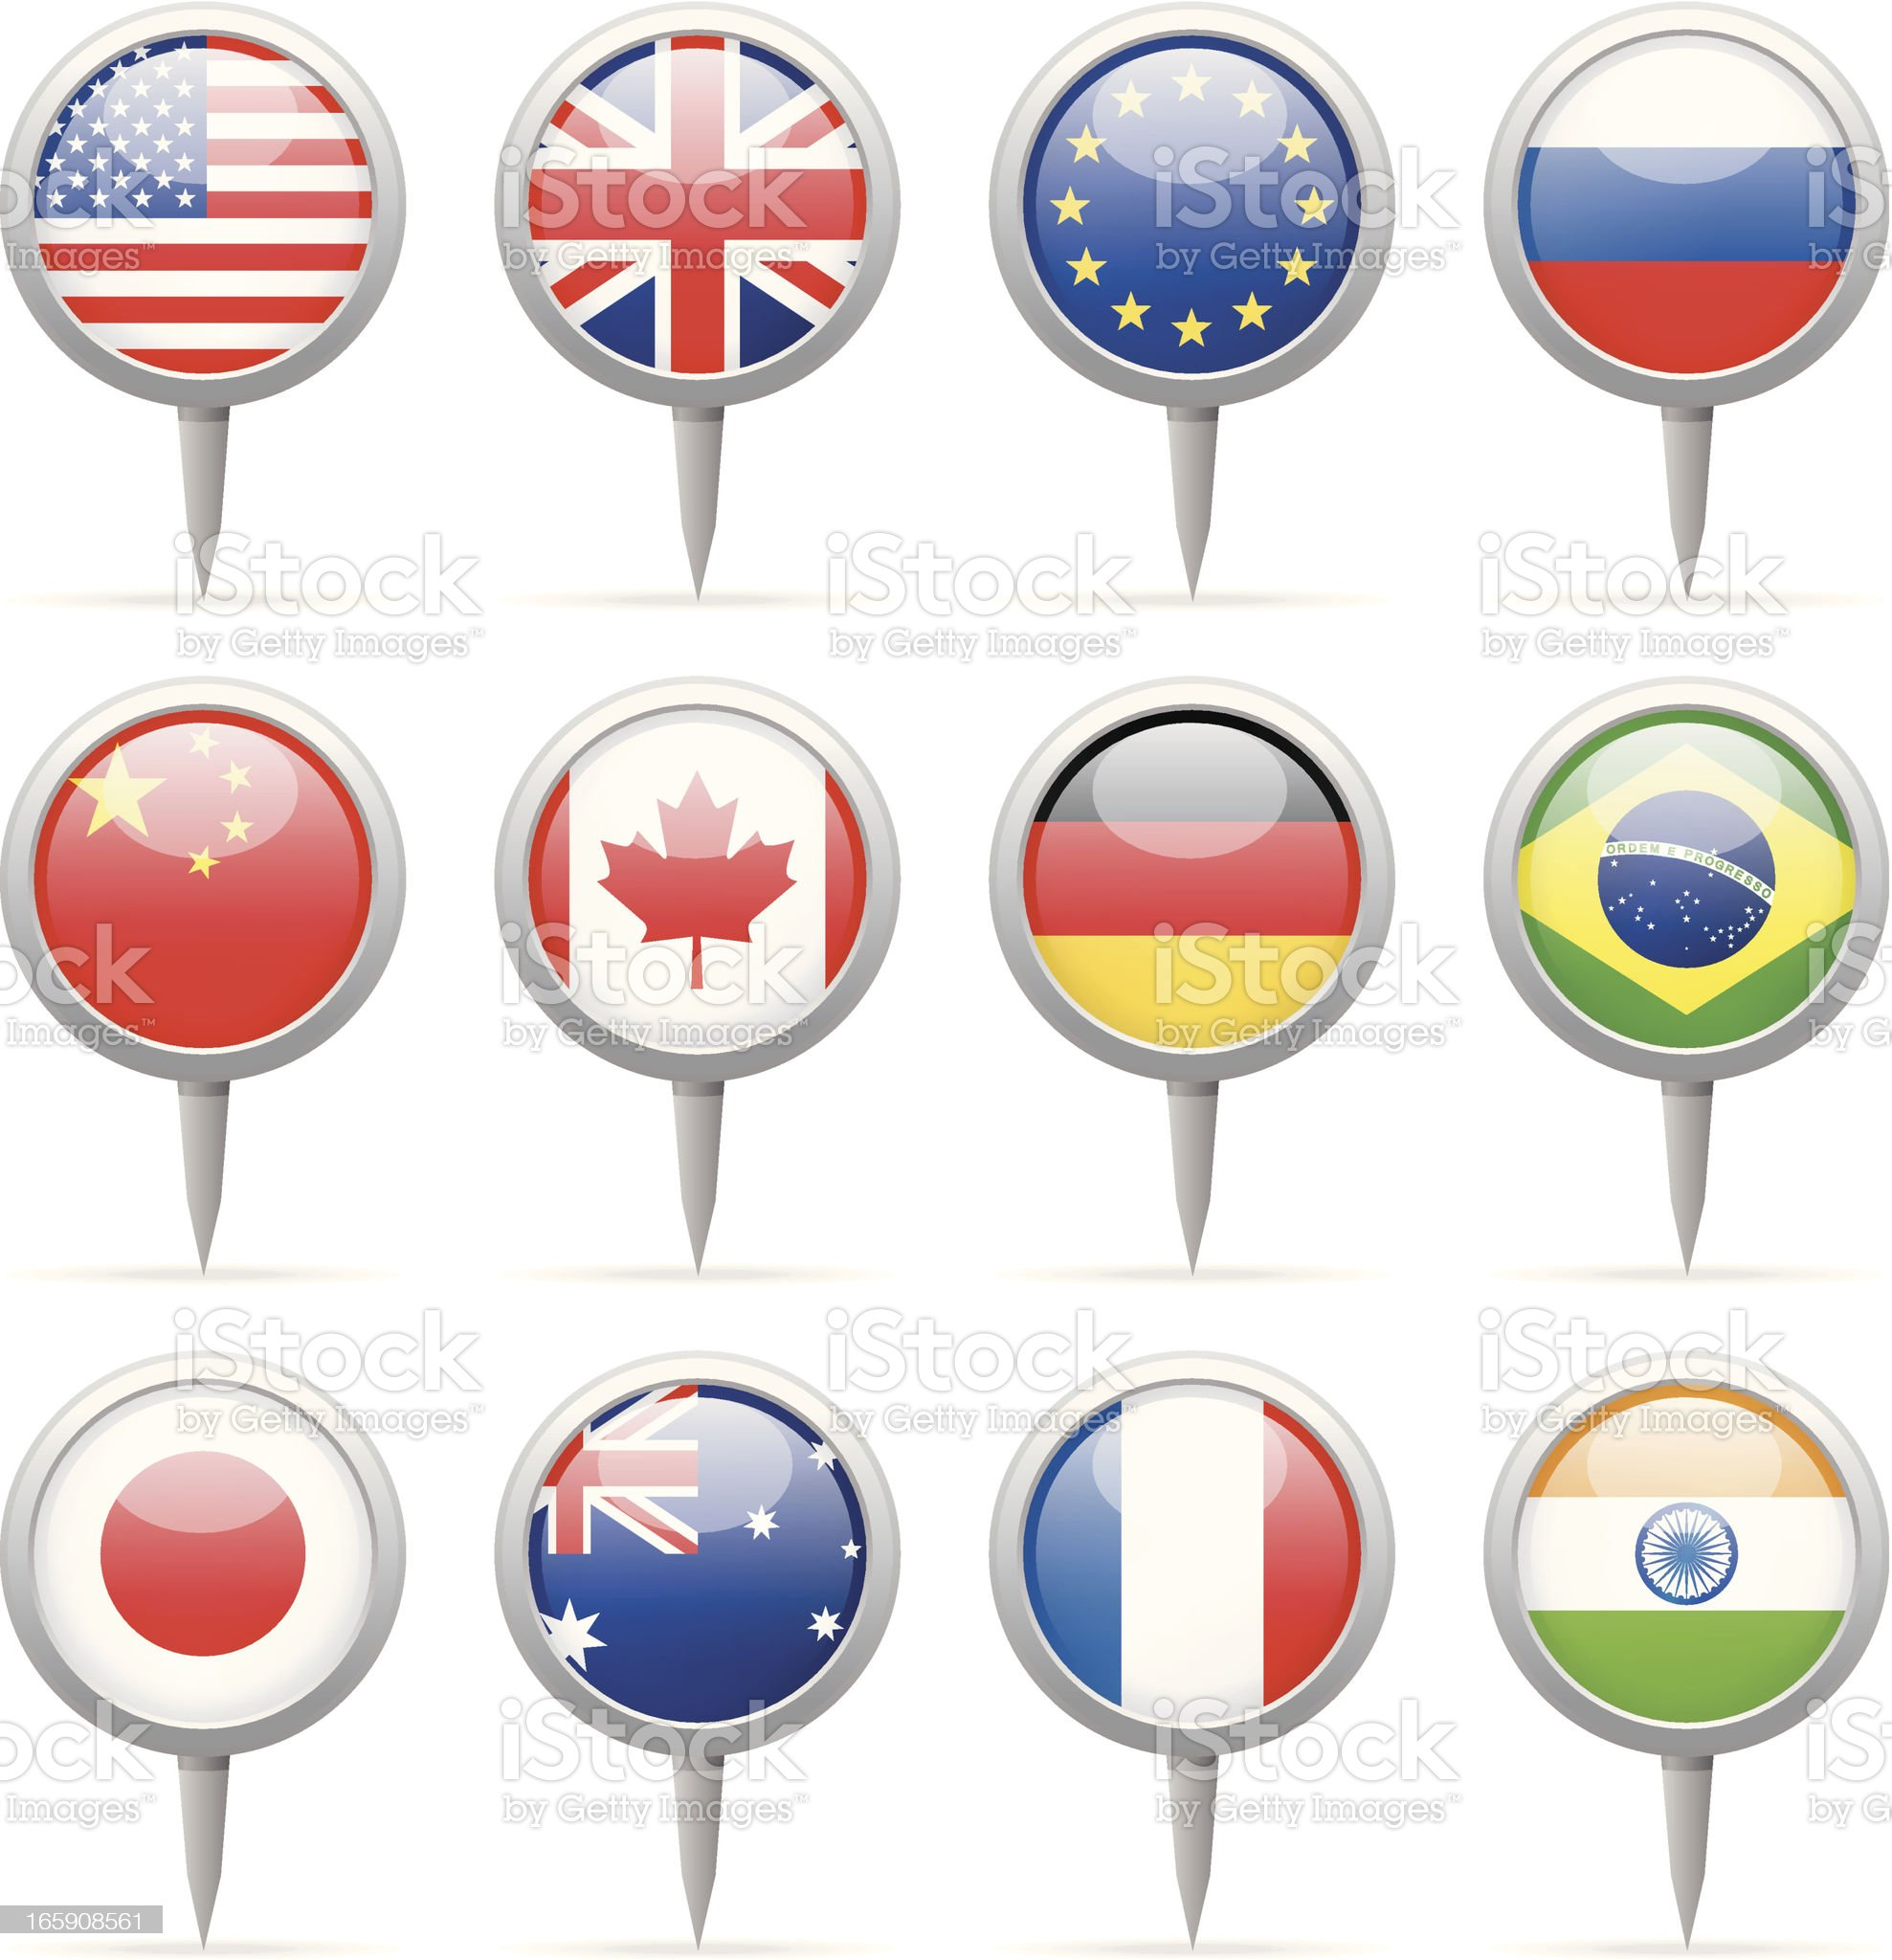 Round flag pins - most popular royalty-free stock vector art